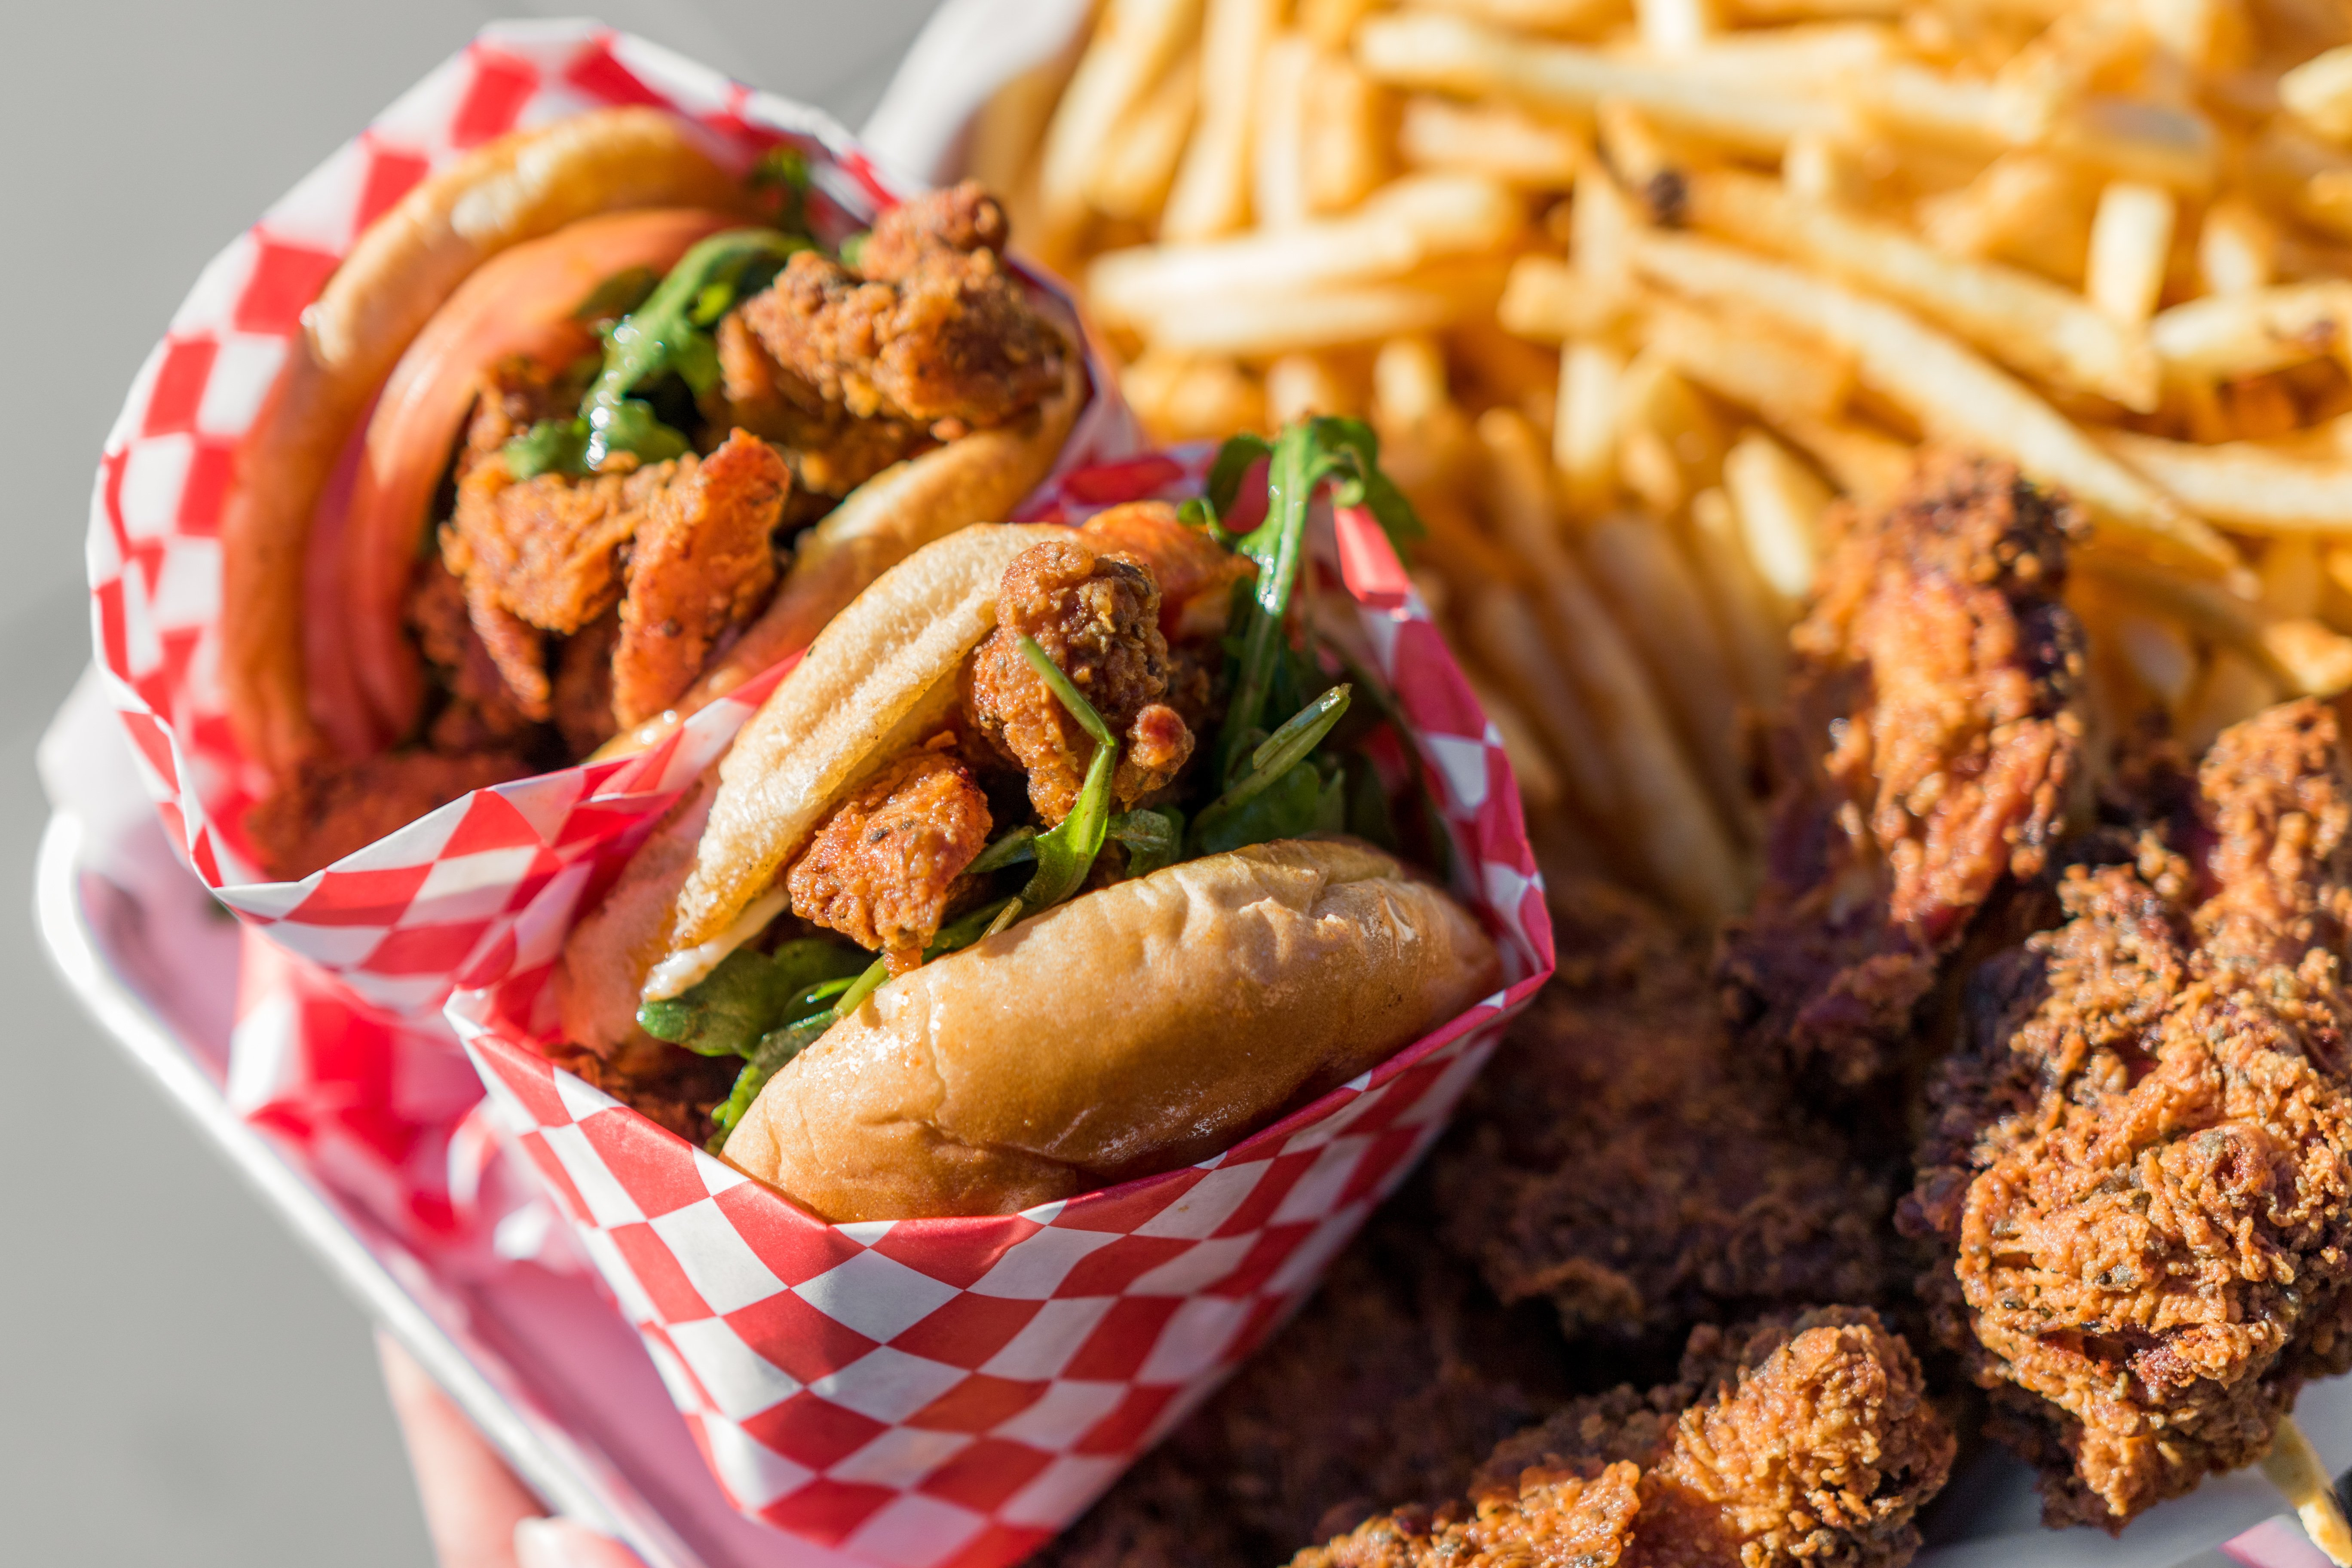 Best Fast Food Chicken Sandwich 2019 Best Bay Area fried chicken sandwich? And the winner is